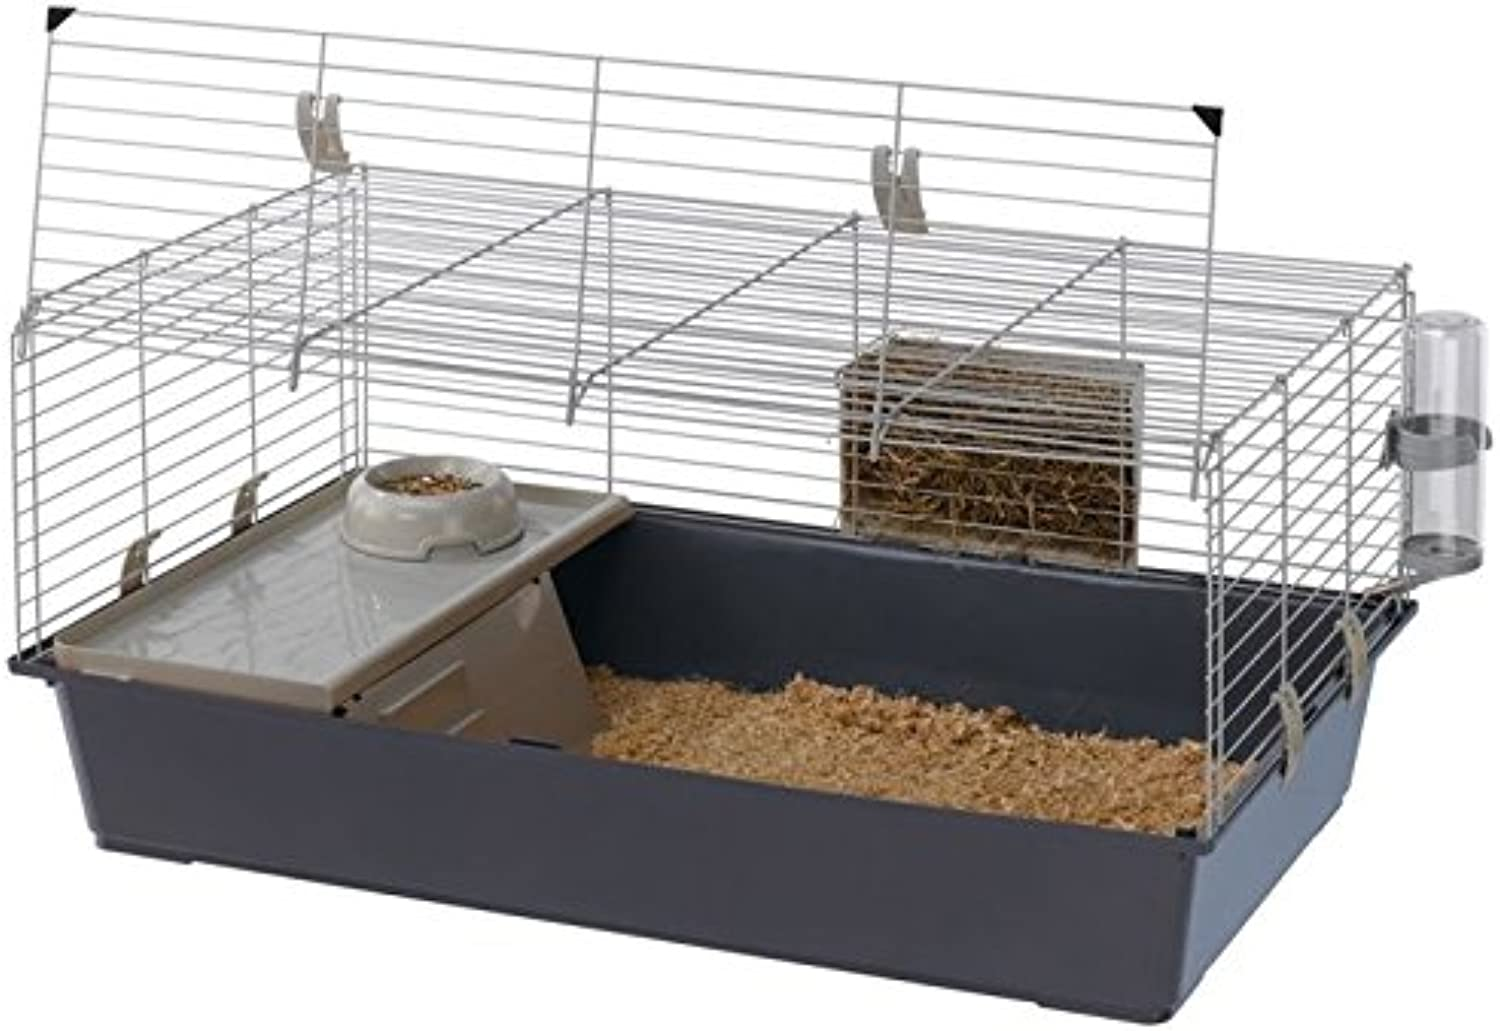 Luxurious And High Quality Rabbit and Guinea Pig Cage 100 (For Small Animals)  An Economical Starter Cage For Dwarf Rabbits And Guinea Pigs